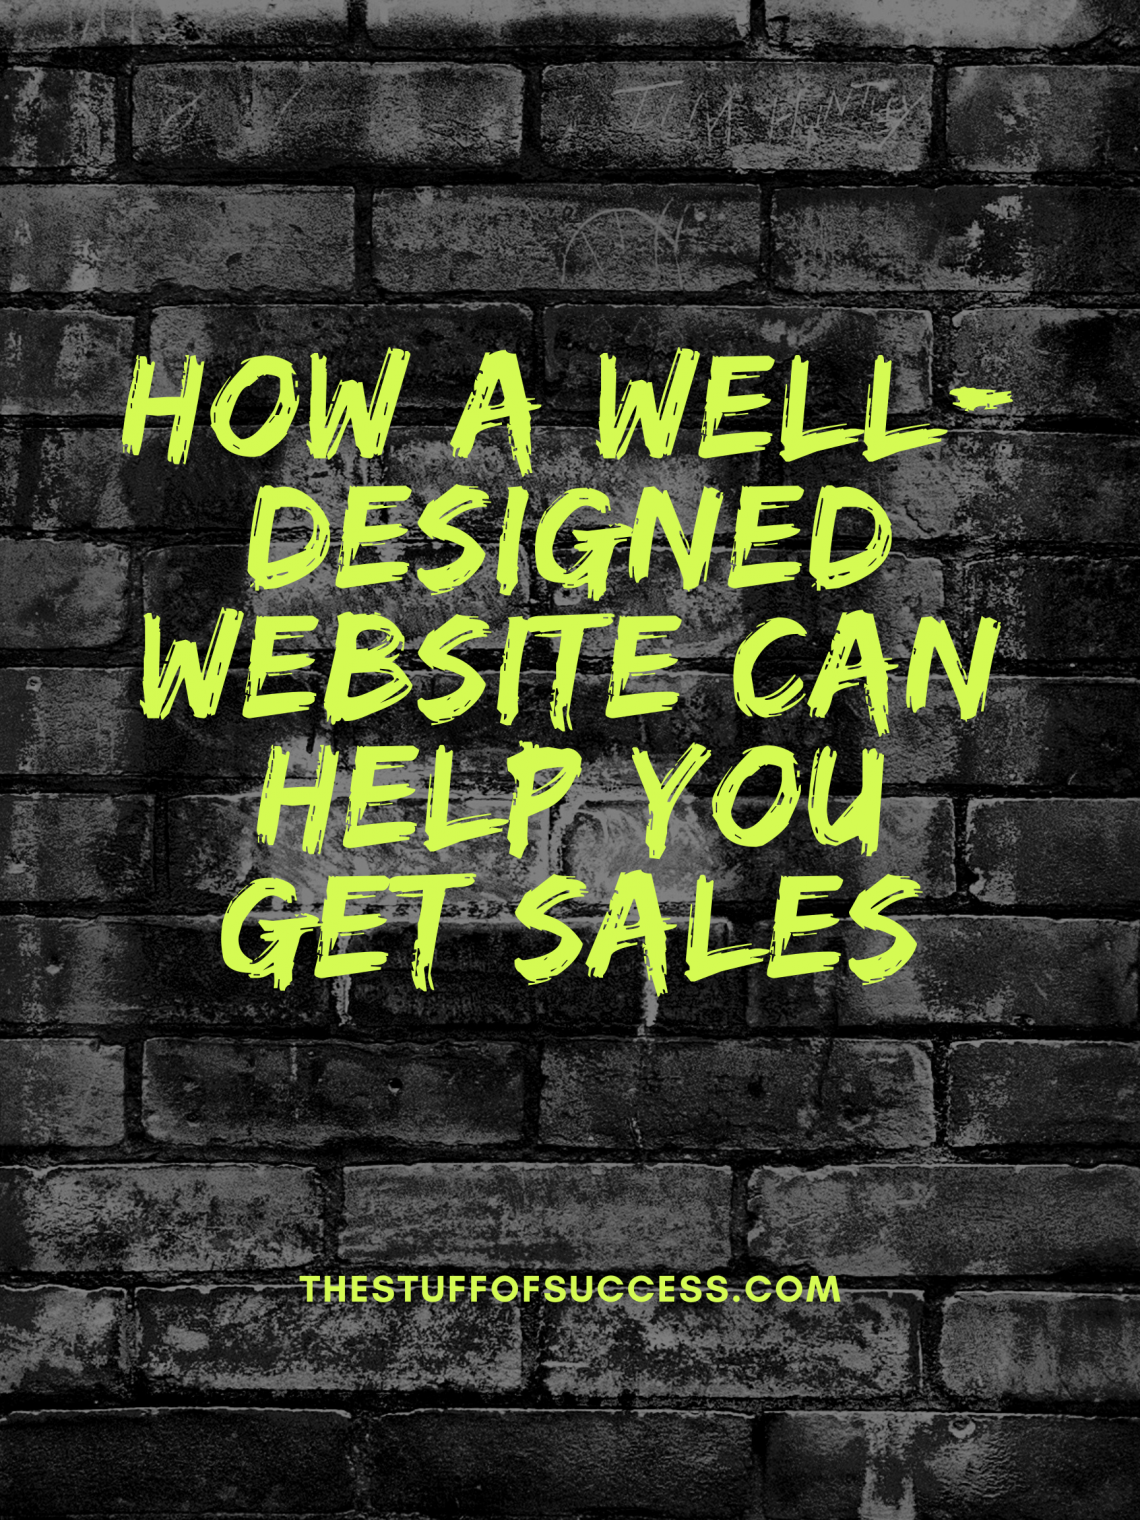 How a Well-Designed Website Can Help You Get Sales